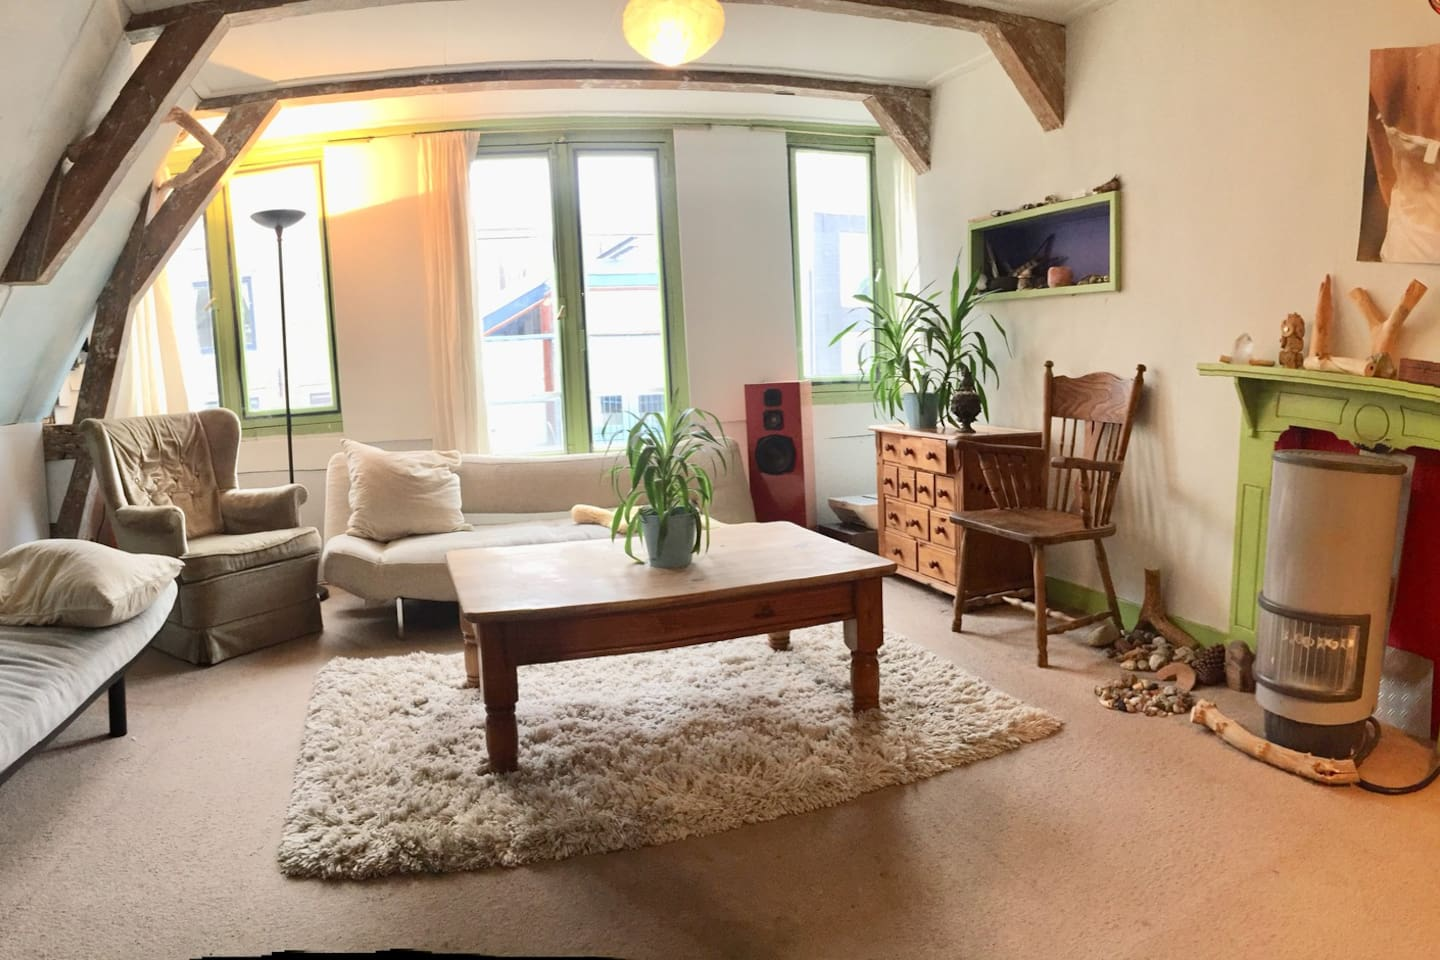 Our cozy living room looks out onto the cutest shopping street. It has a single futon bed, and a couch which folds down for sleeping.